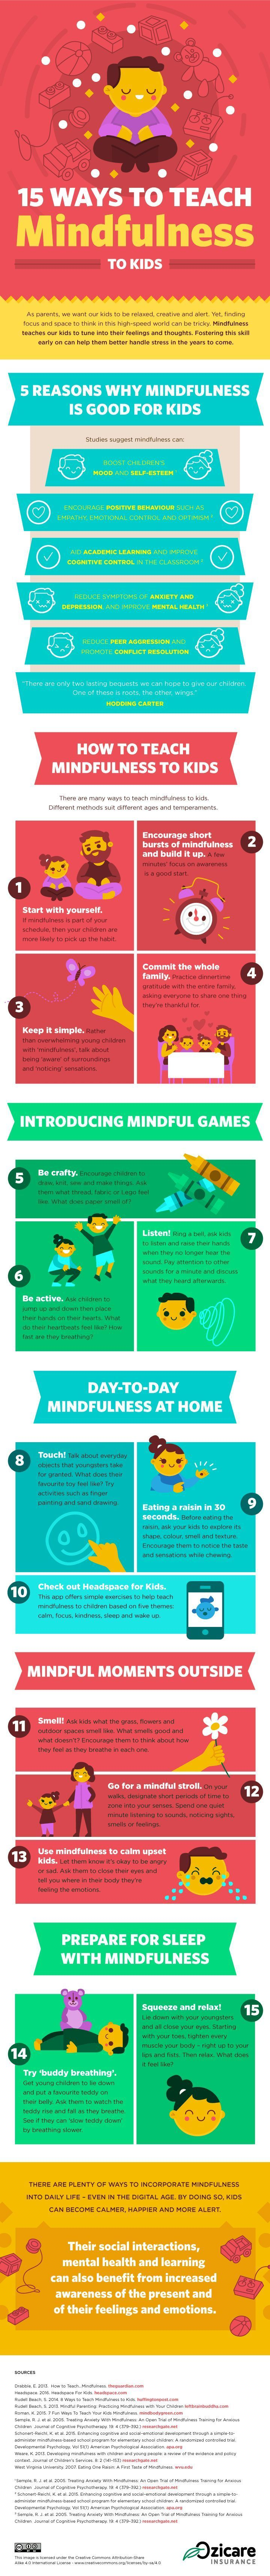 15 Ways to Teach Mindfulness to Kids [Infographic]